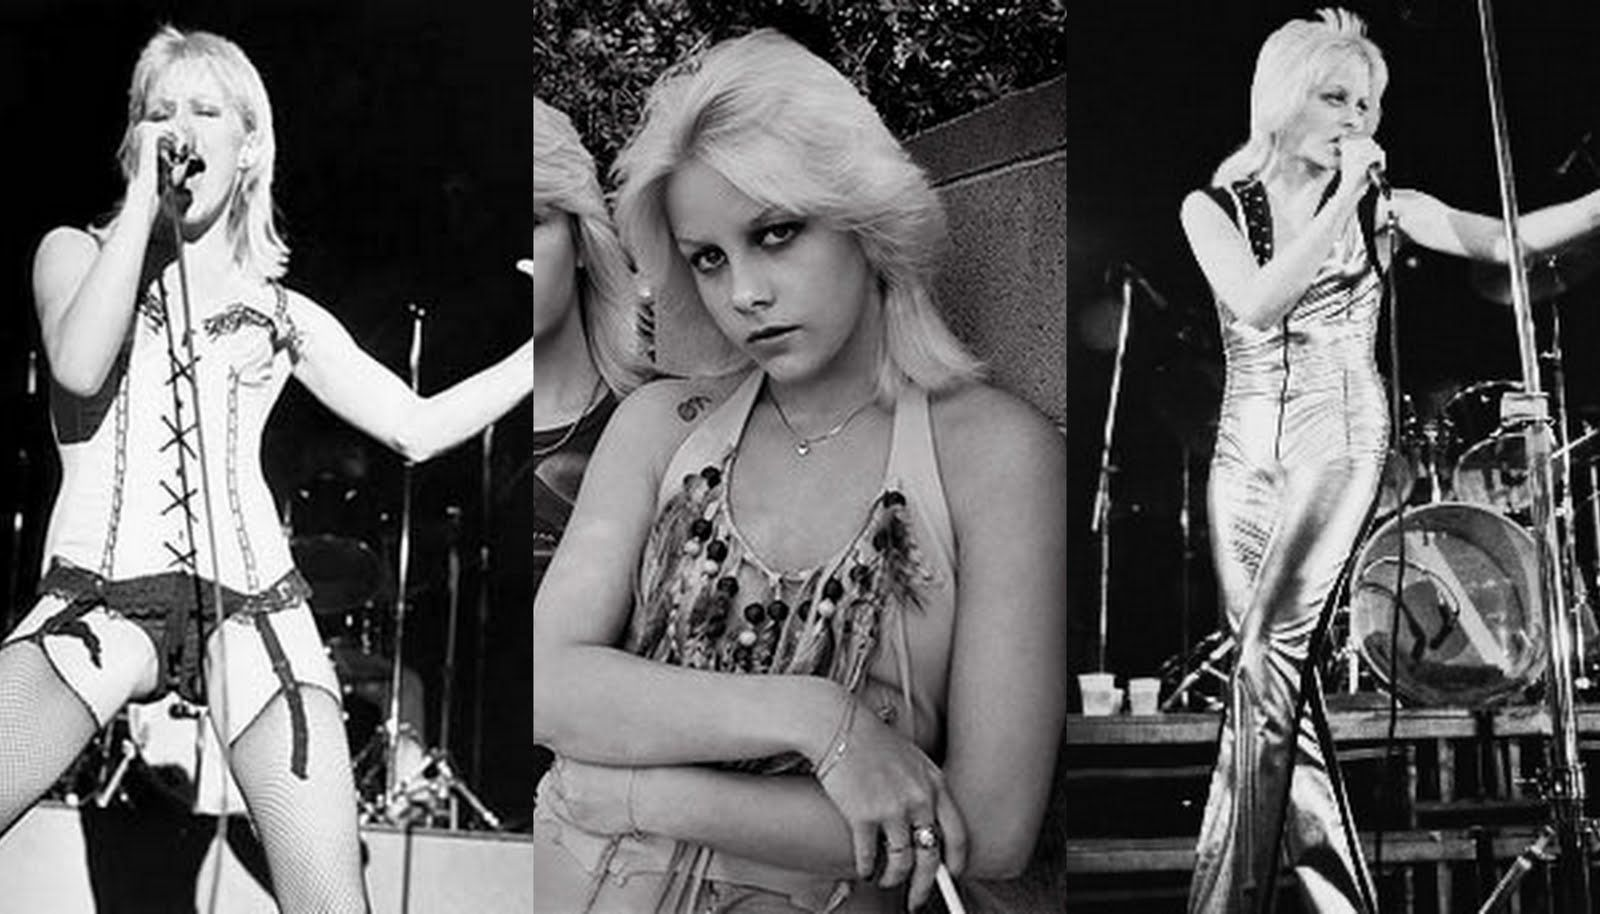 Watch Cherie Currie video